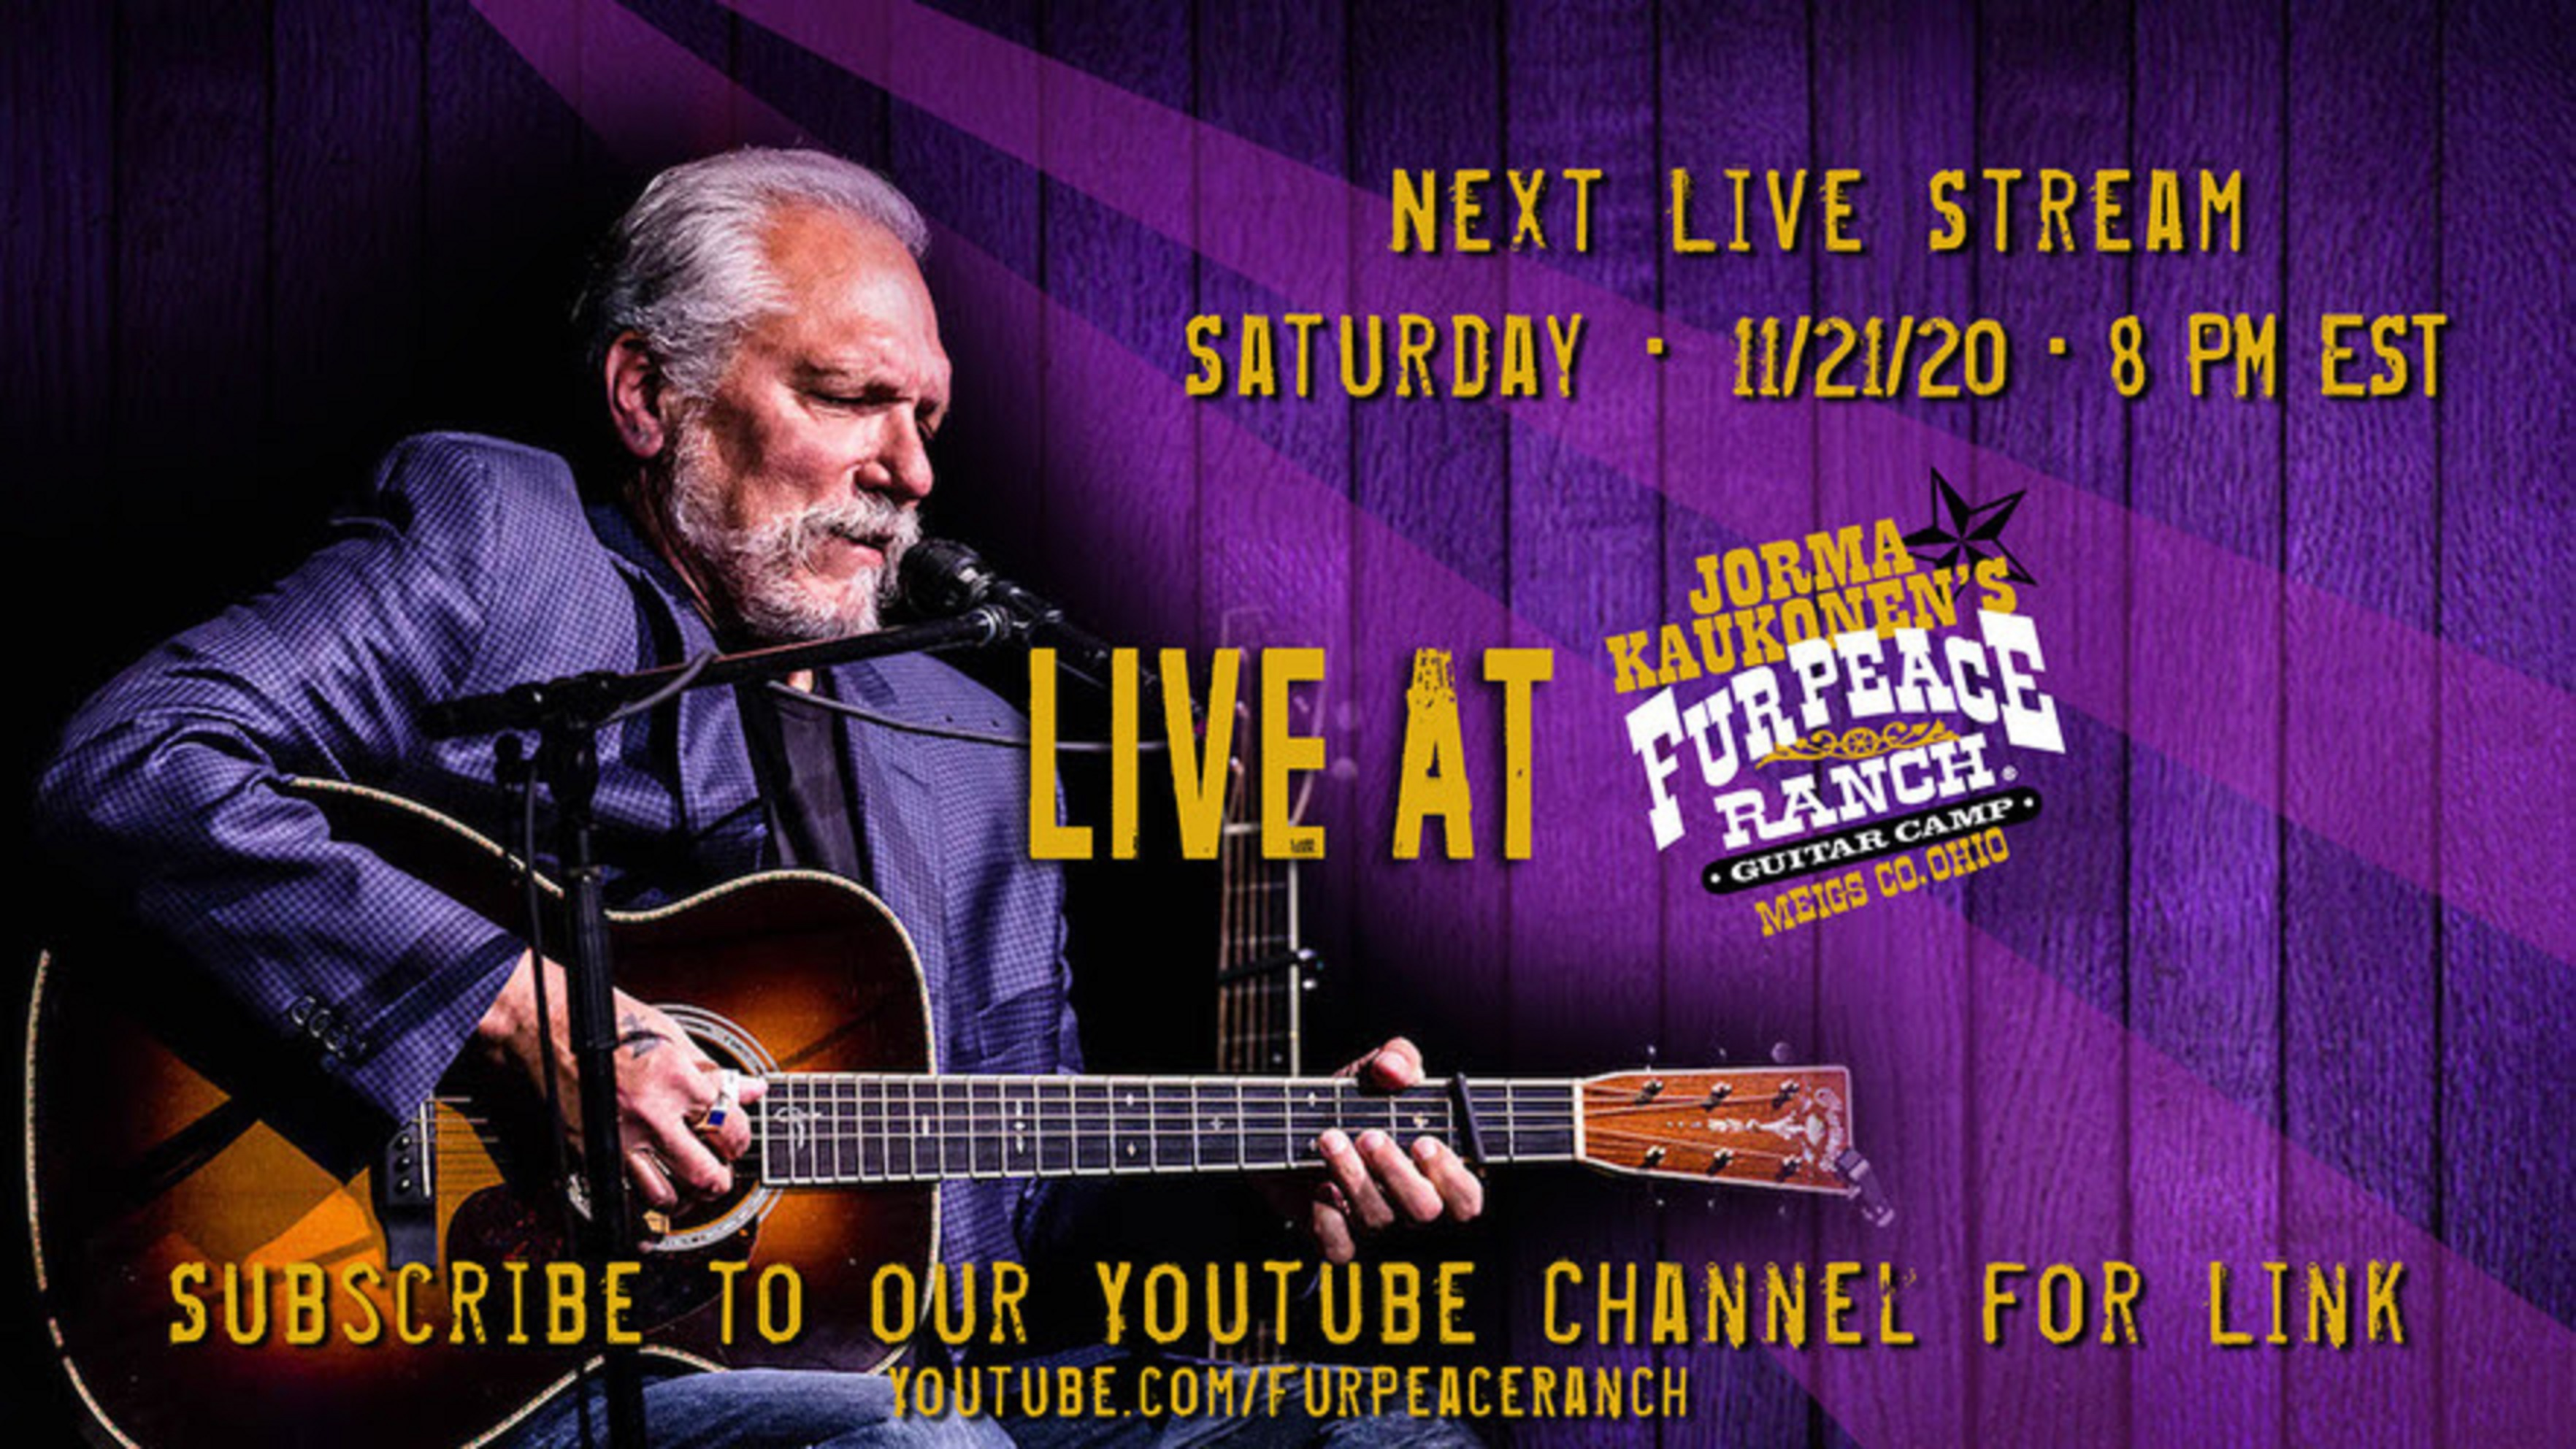 Jorma Kaukonen with guest John Hurlbut this Saturday Night